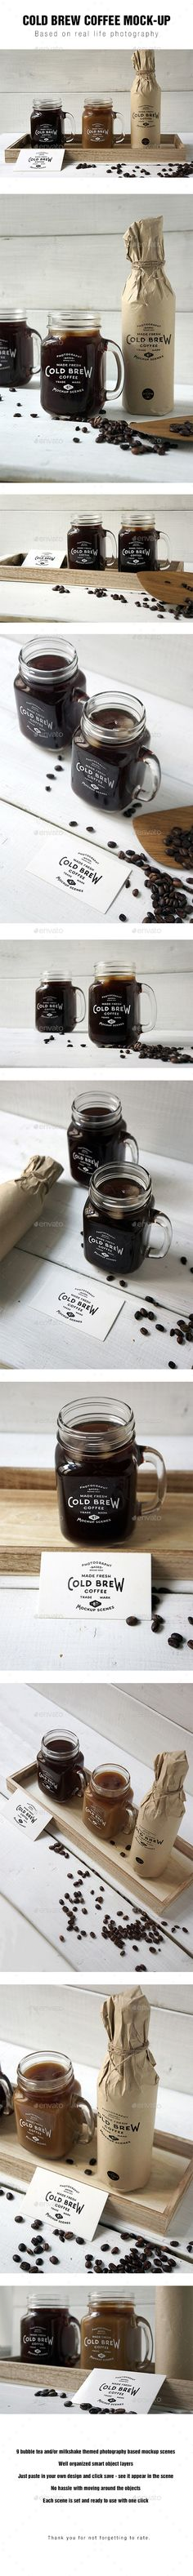 Cold Brew Coffee Mockup. Download here: https://graphicriver.net/item/cold-brew-coffee-mockup/16929470?ref=ksioks